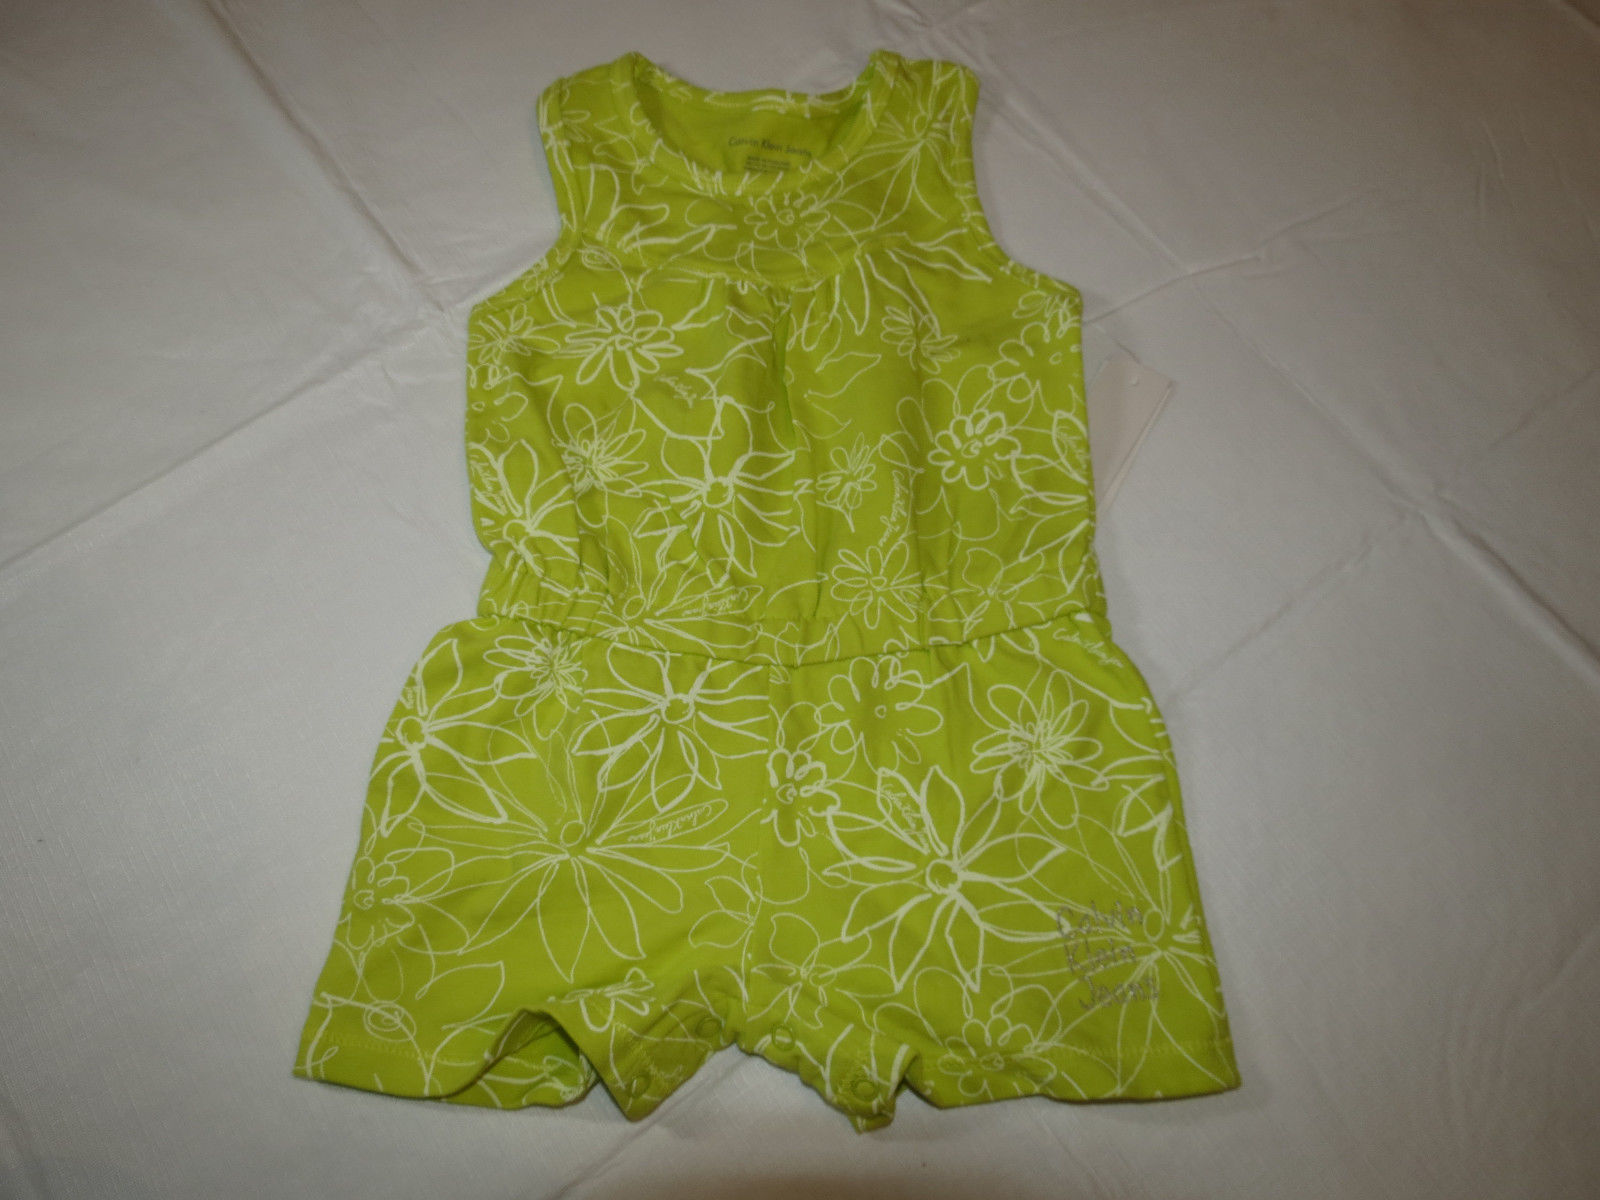 Primary image for Calvin Klein Jeans girls green white 6 youth kids romper 3811042-99 NWT *^